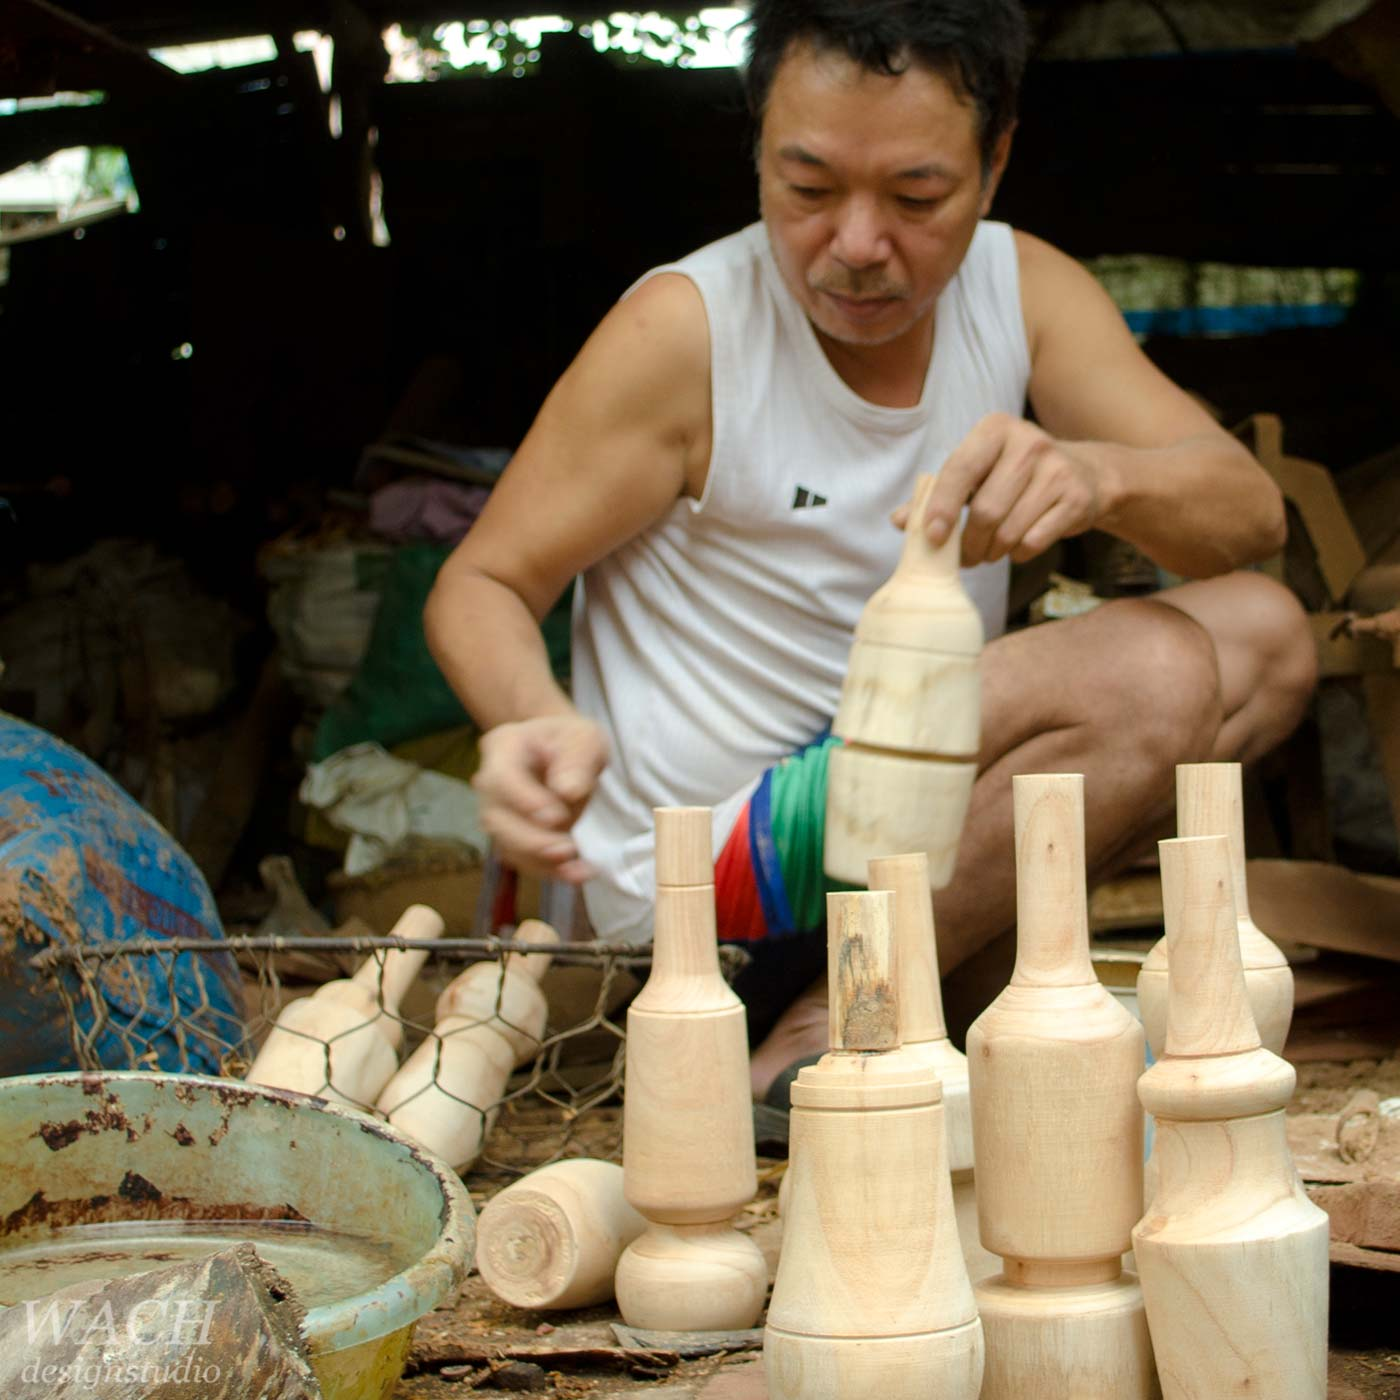 Vietnamese carpenter preparing Flaska wood solids, designed by WACH designstudio, for the manufactory of moulds for glass blowing